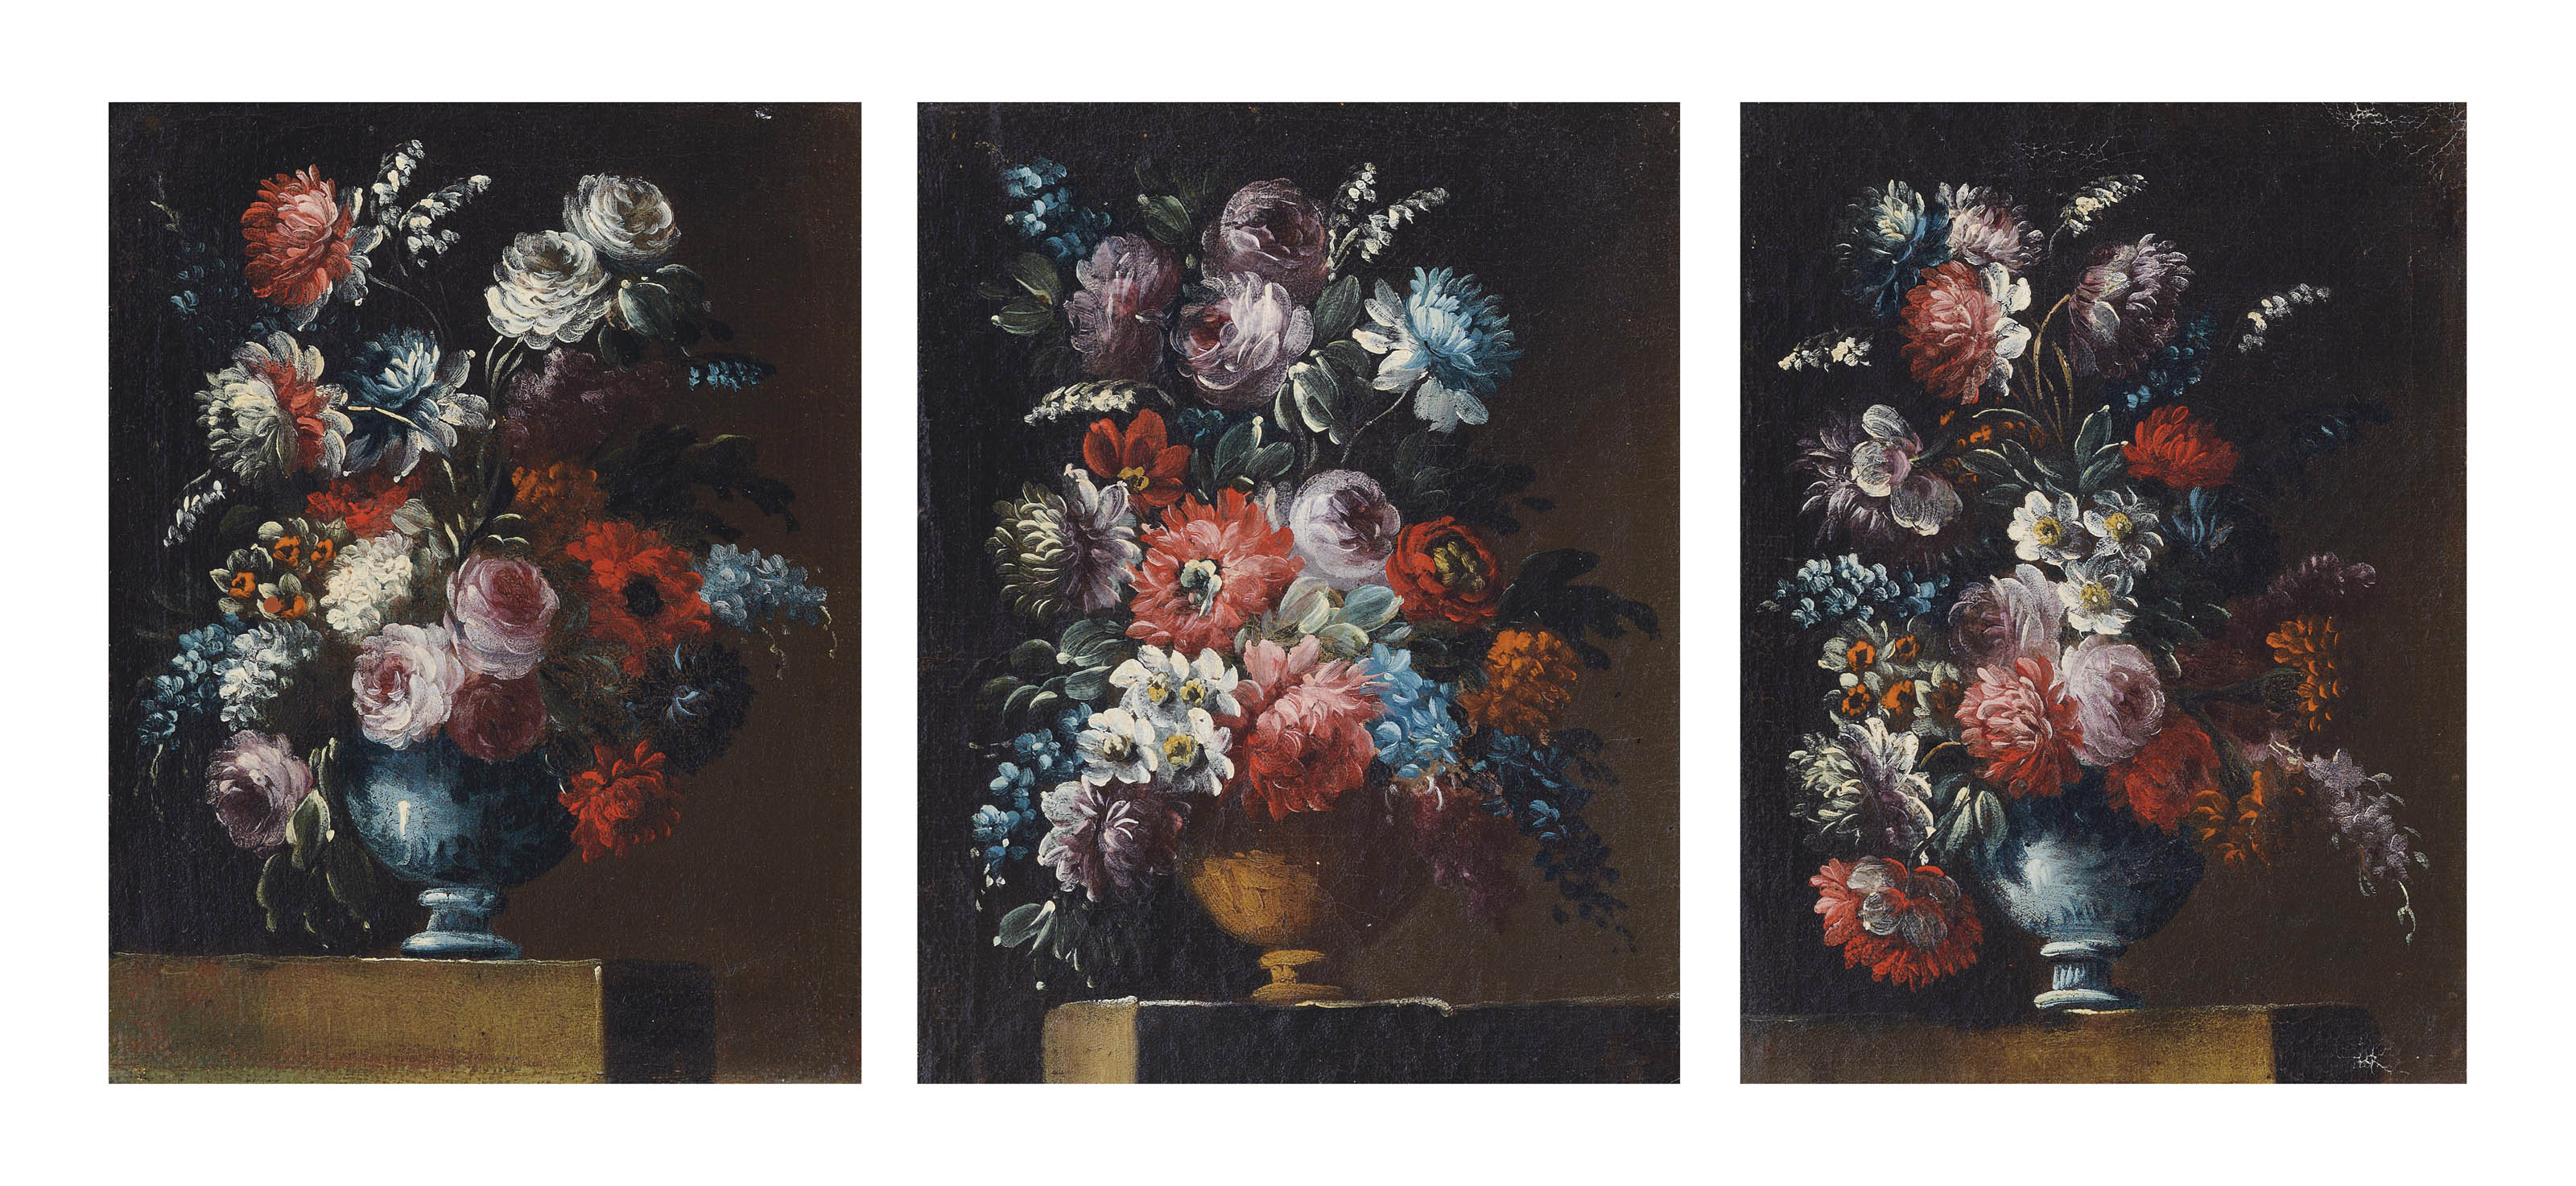 Roses, daffodils, snowdrops and other flowers in a vase on a stone ledge; Roses, snowdrops, hyacinths and other flowers in a blue vase on a stone ledge; and A rose, chrysanthemums, narcissi and other flowers in a sculpted vase on a stone ledge